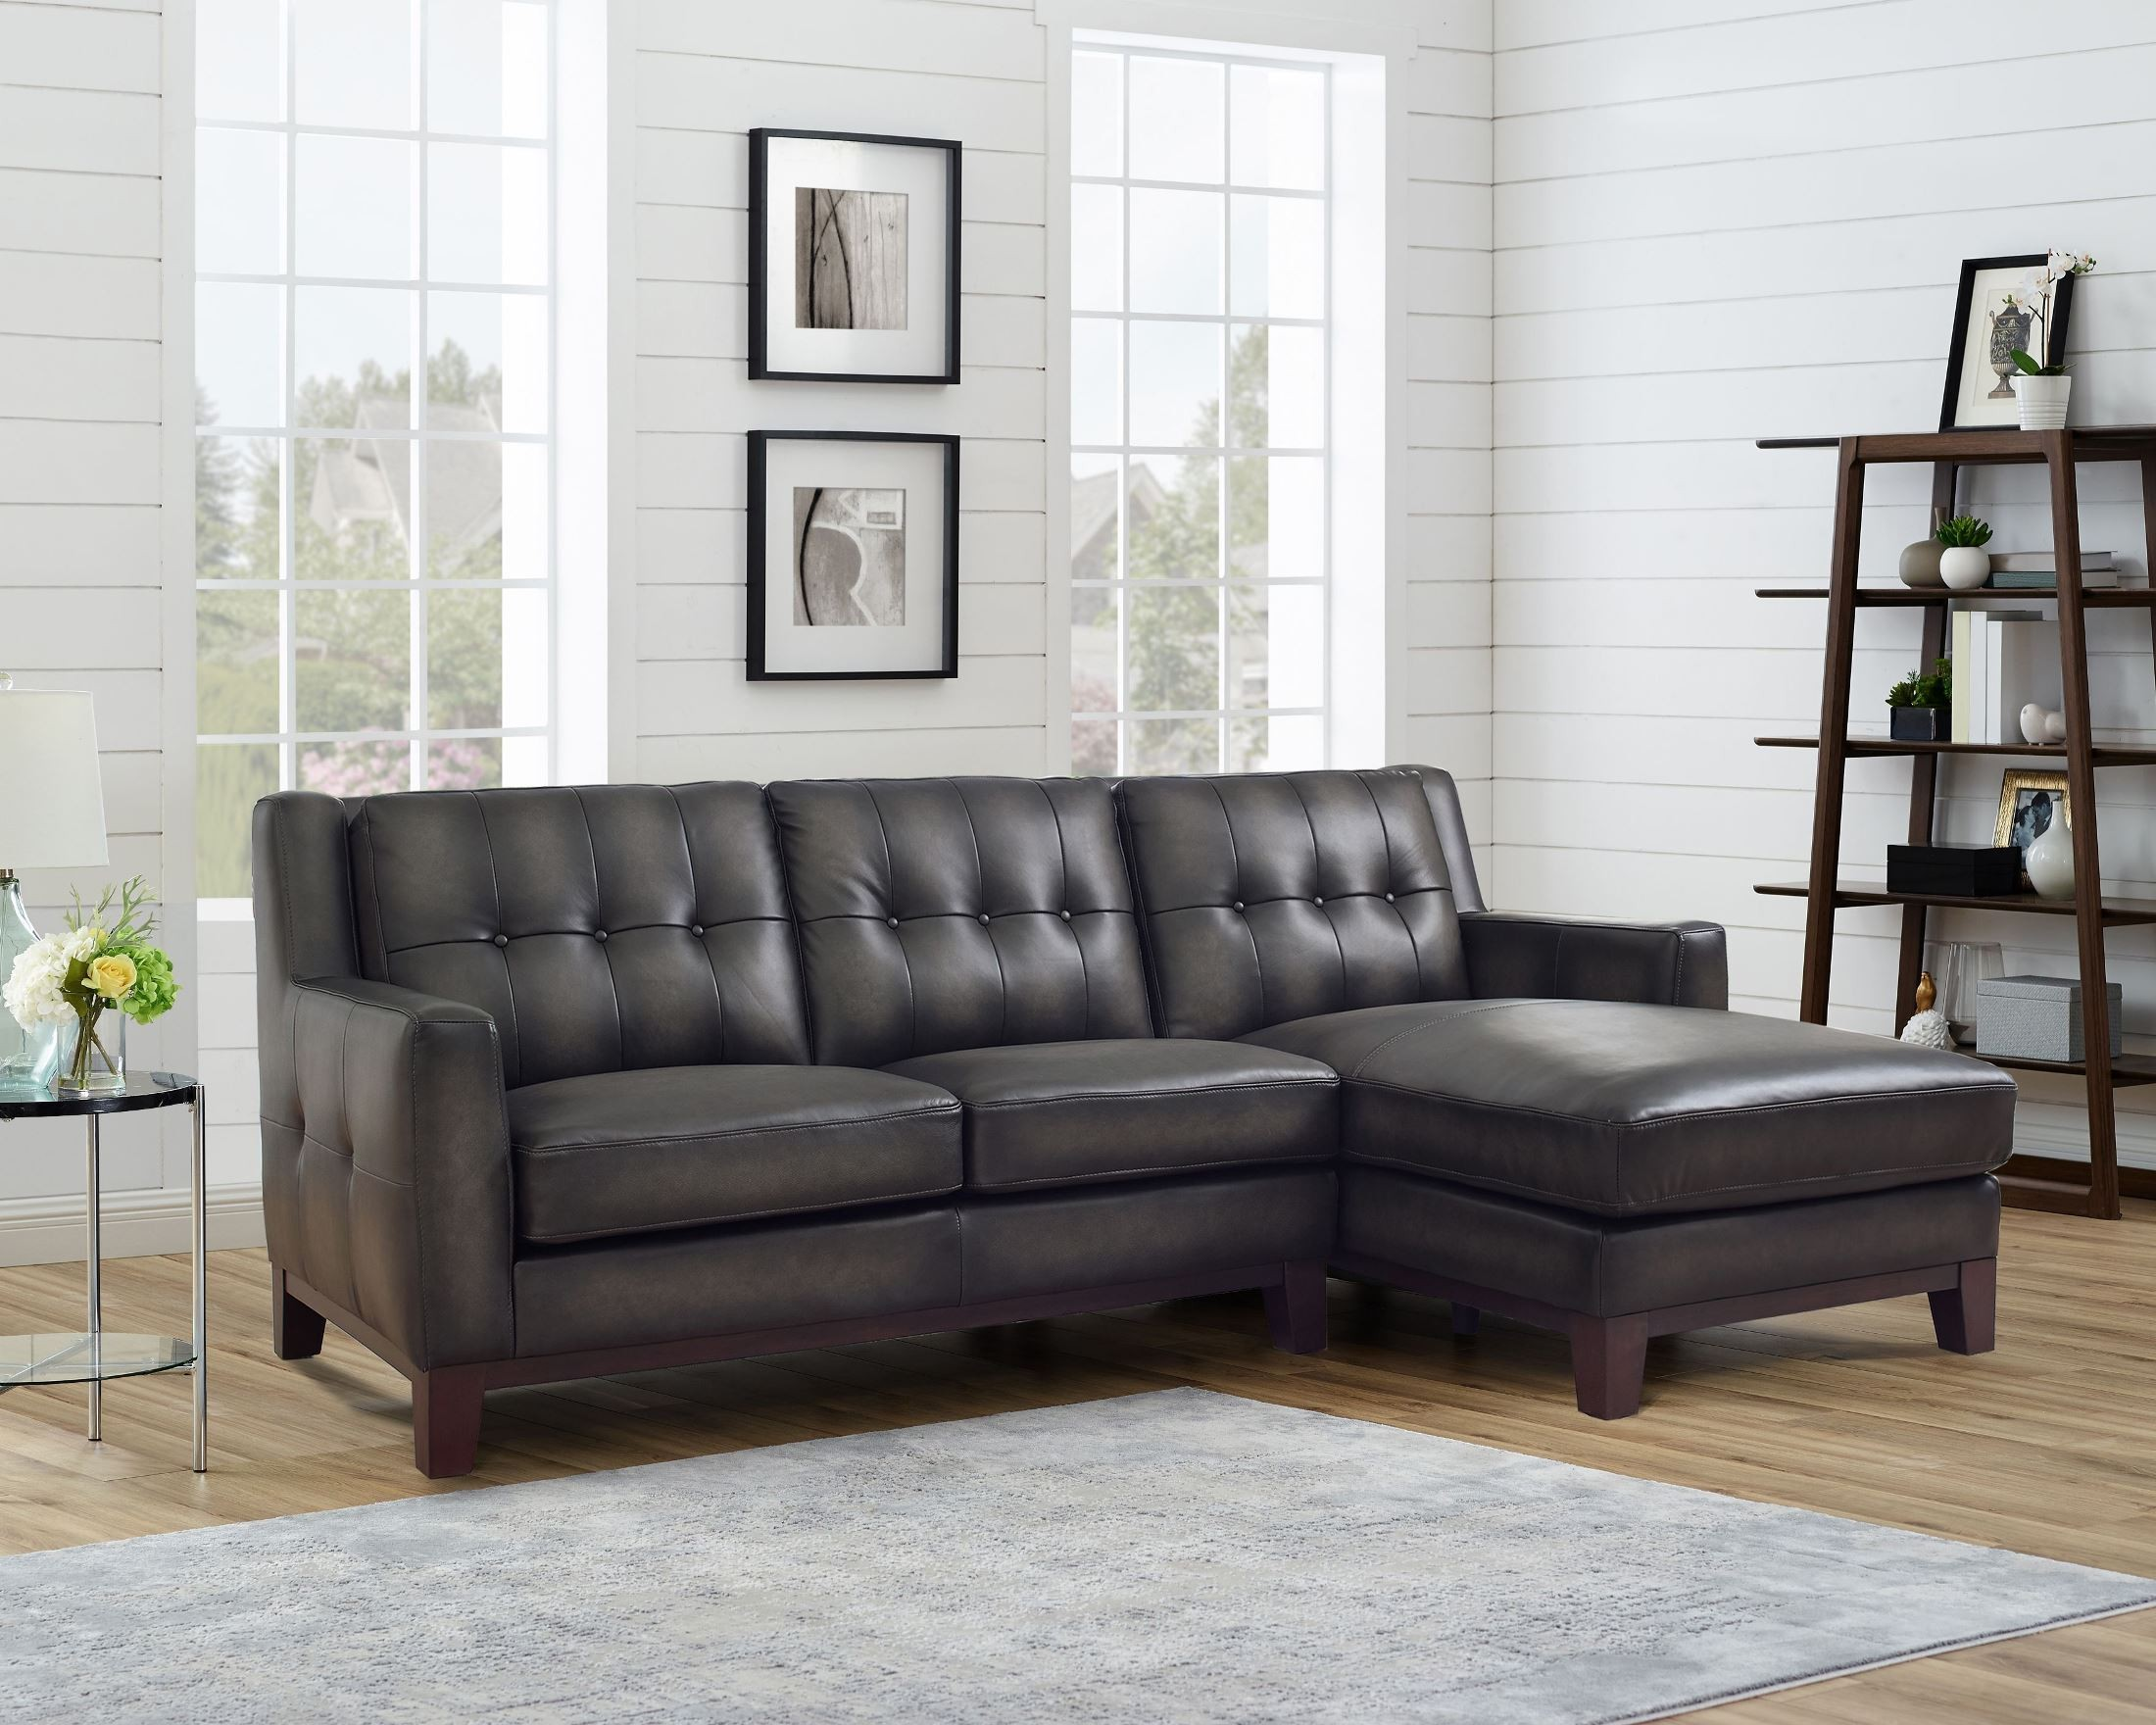 hydeline nicola grey top grain leather sofa chaise